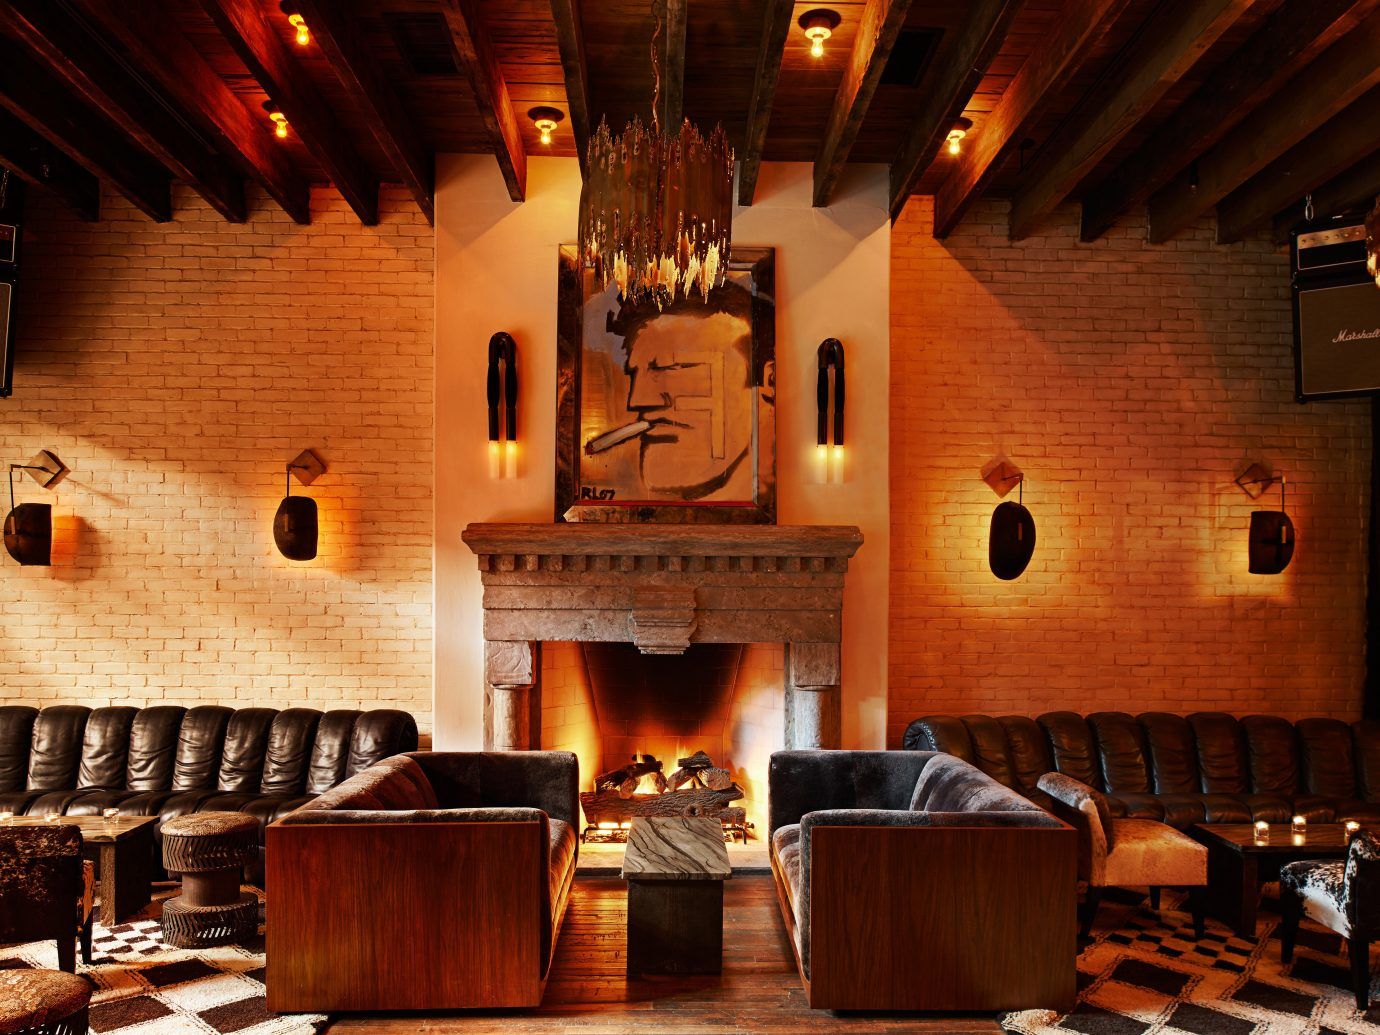 Boutique City Fireplace Hotels Lobby Lounge Modern Style + Design indoor wall man made object room ceiling Living restaurant furniture area